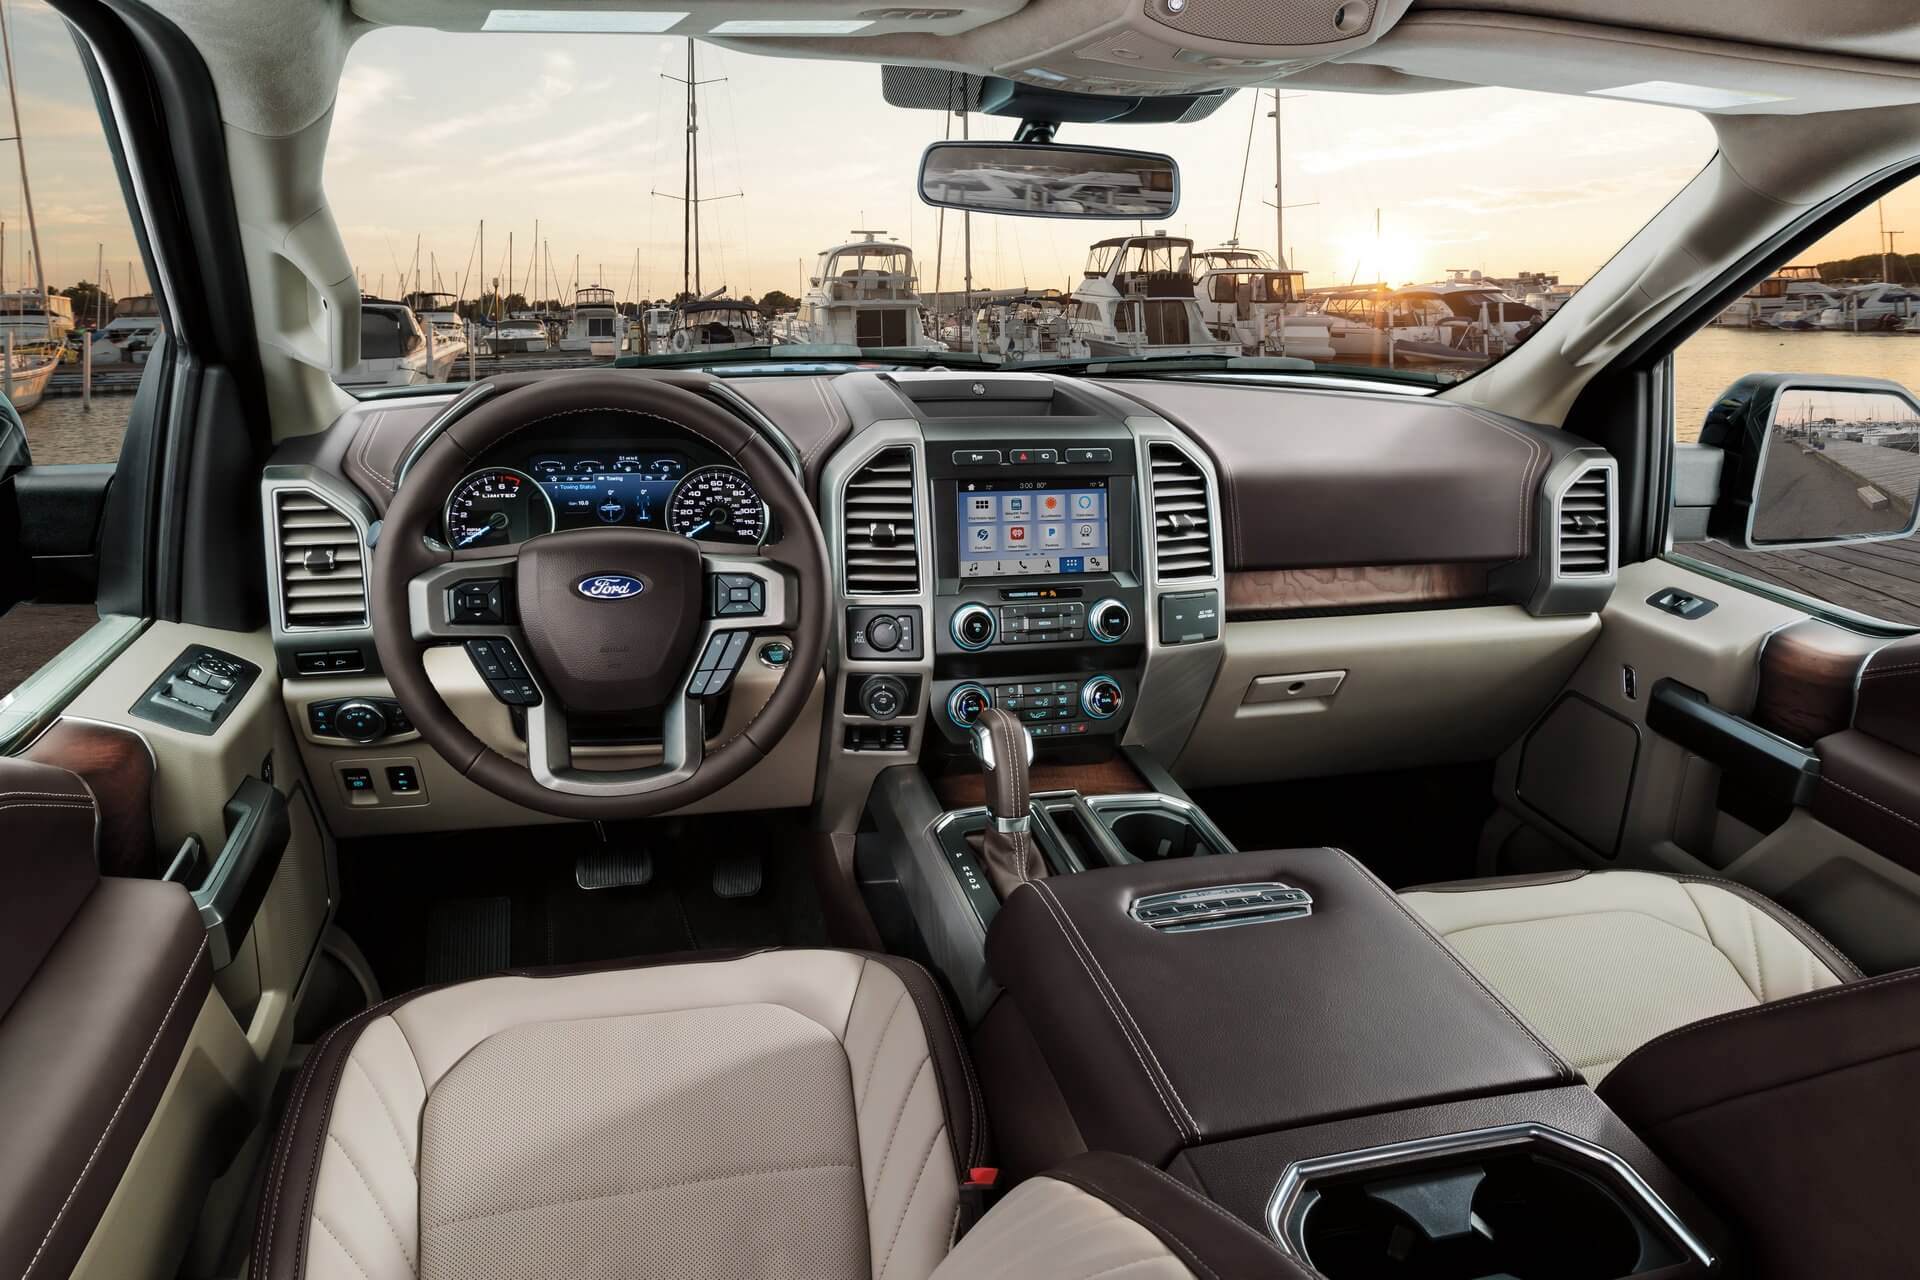 tien-nghi-ban-tai-ford-f-150-limited-2019-2020-muaxegiatot-com